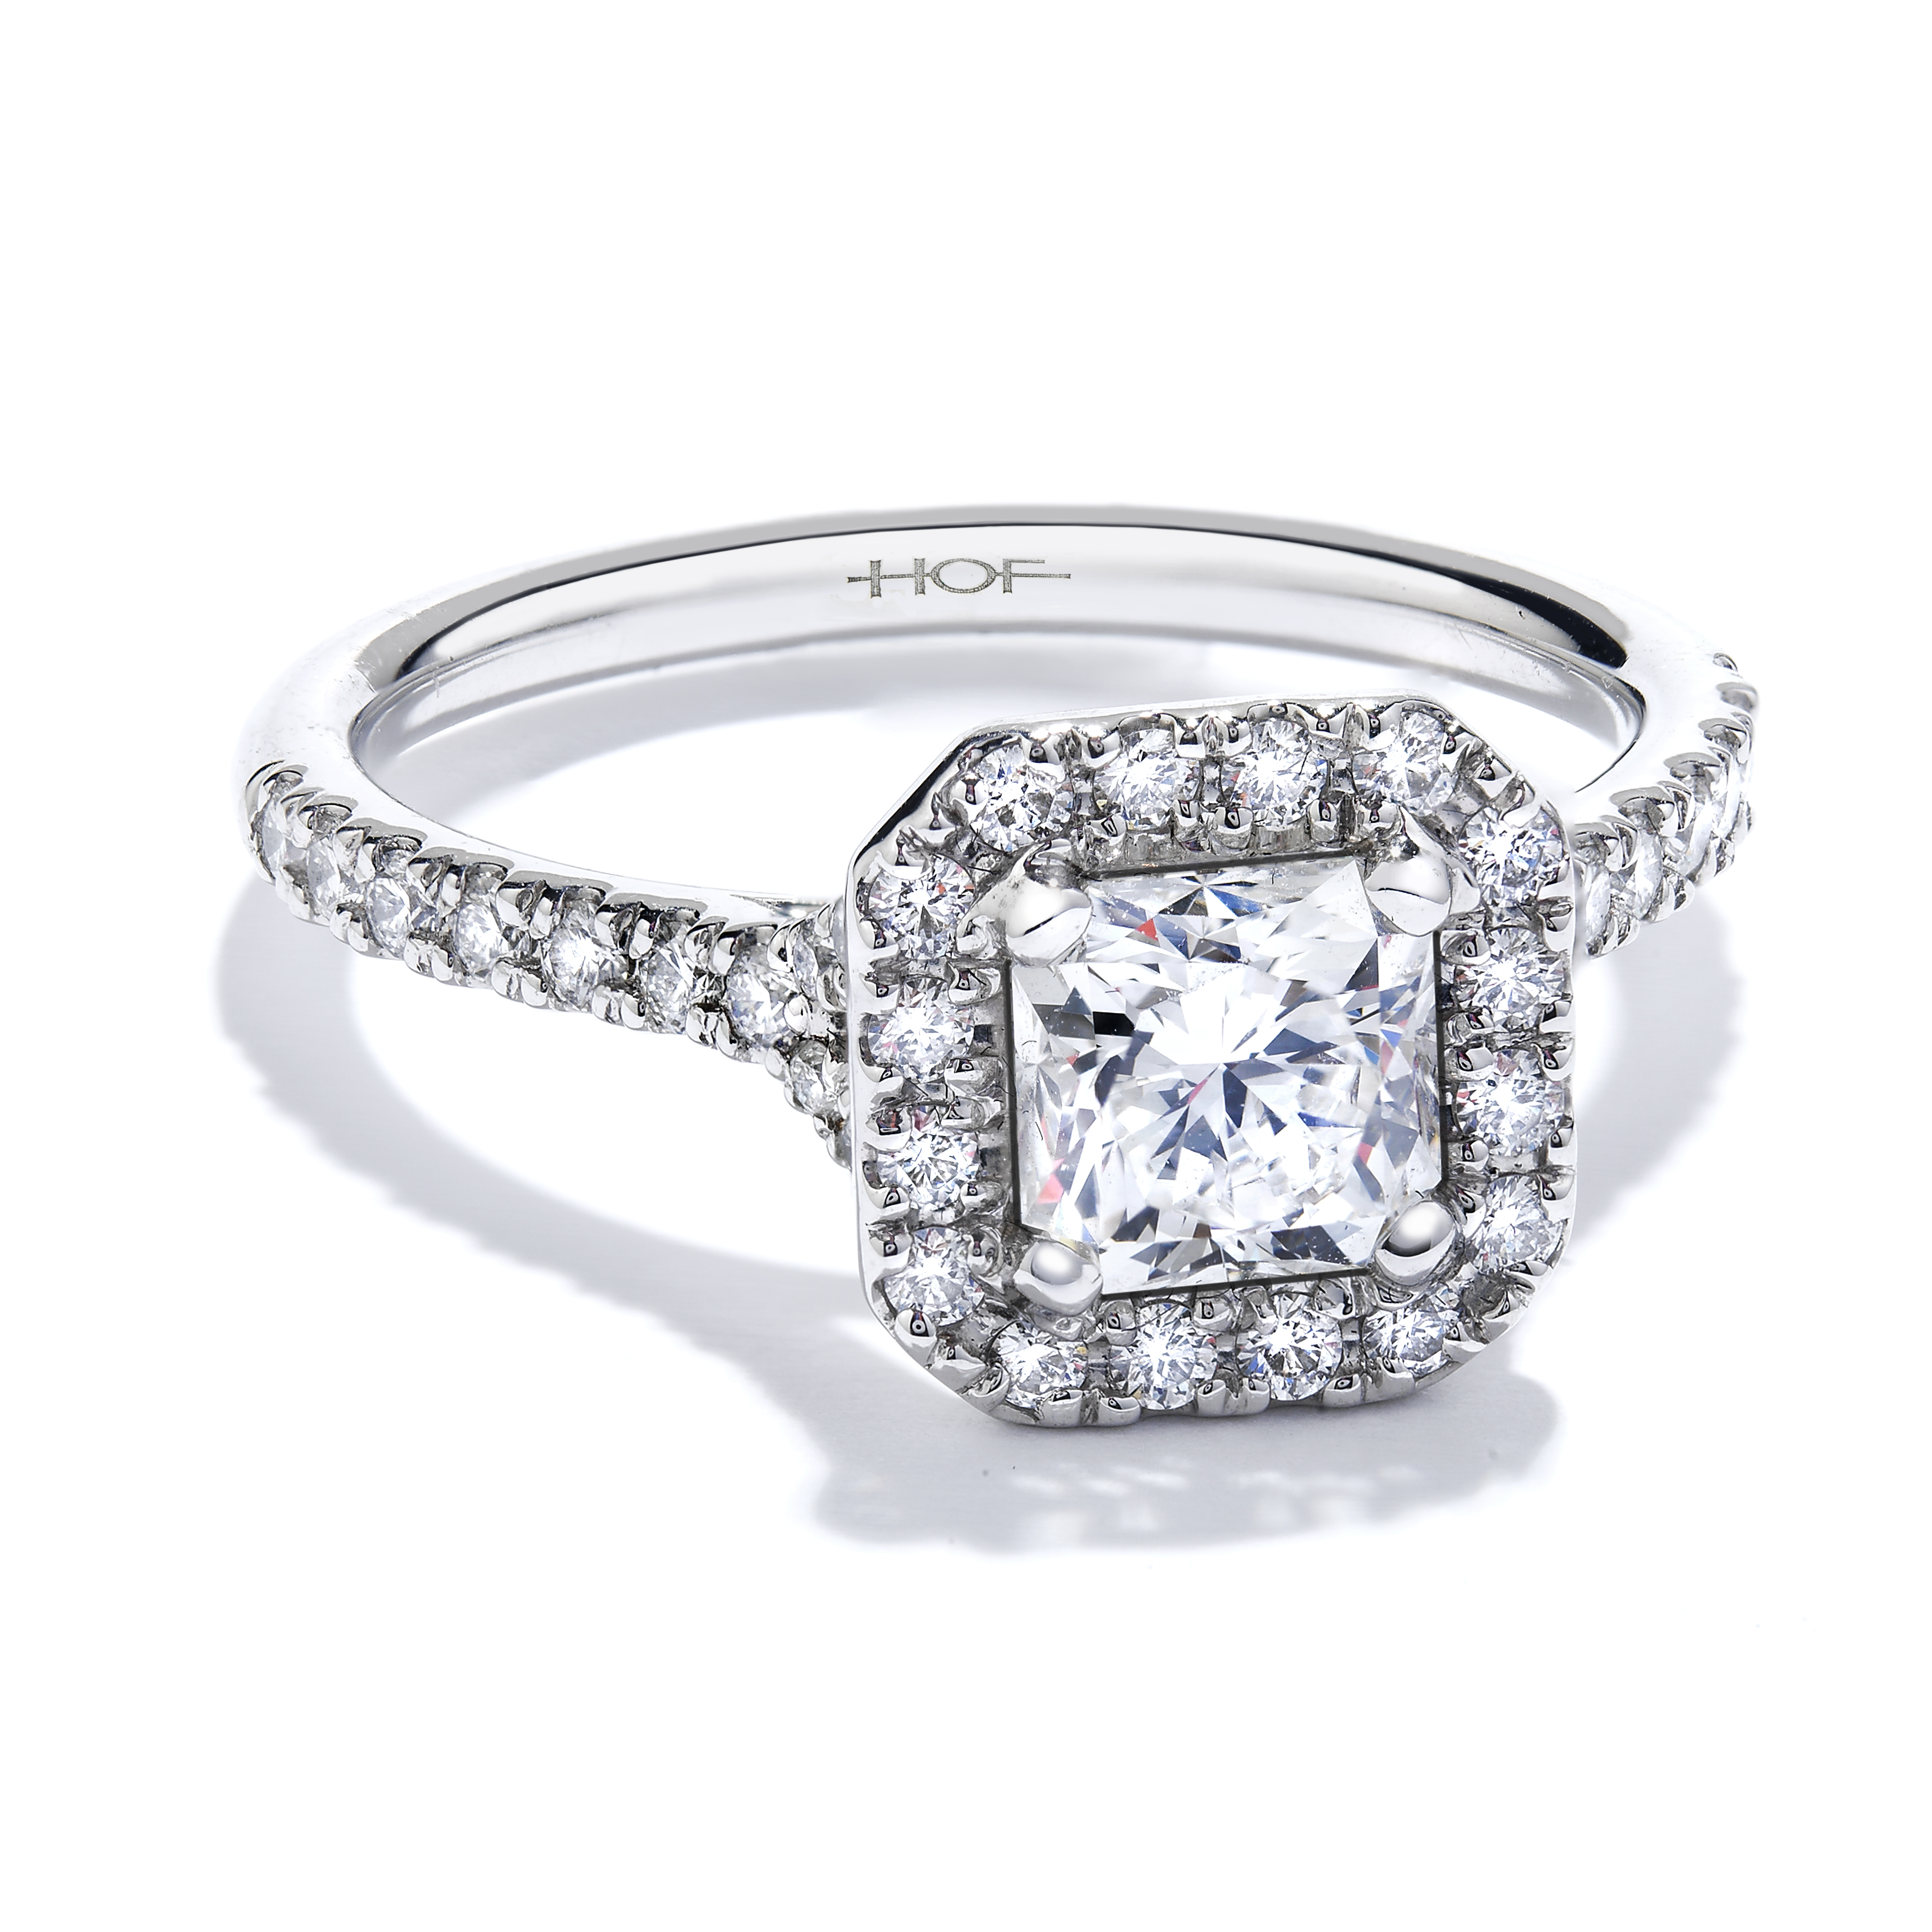 Transcend%20single%20halo%20dream%20diamond%20engagement%20ring.original